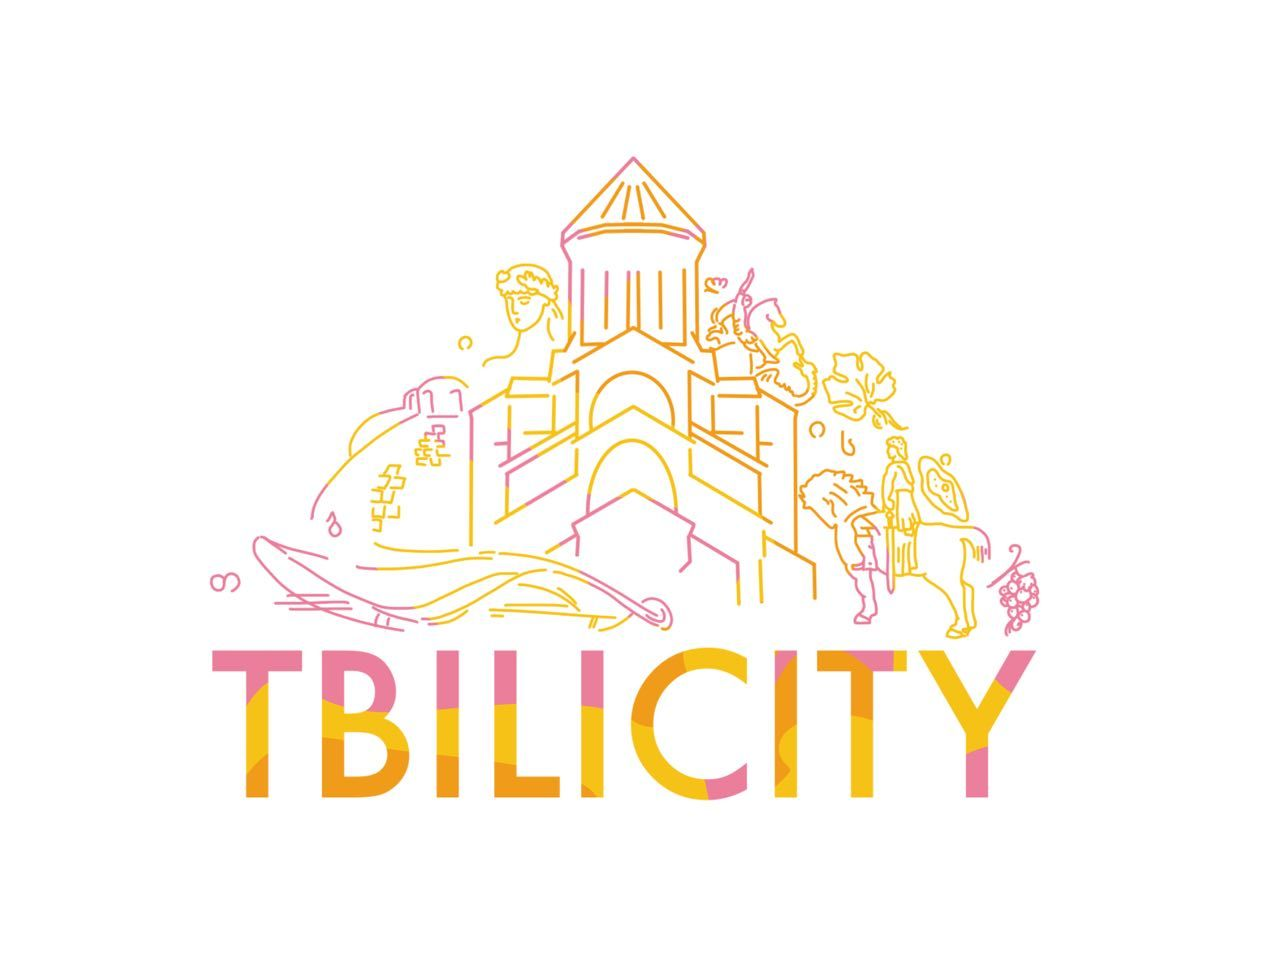 Tbilisi city bus tour sightseeing hop on hop of